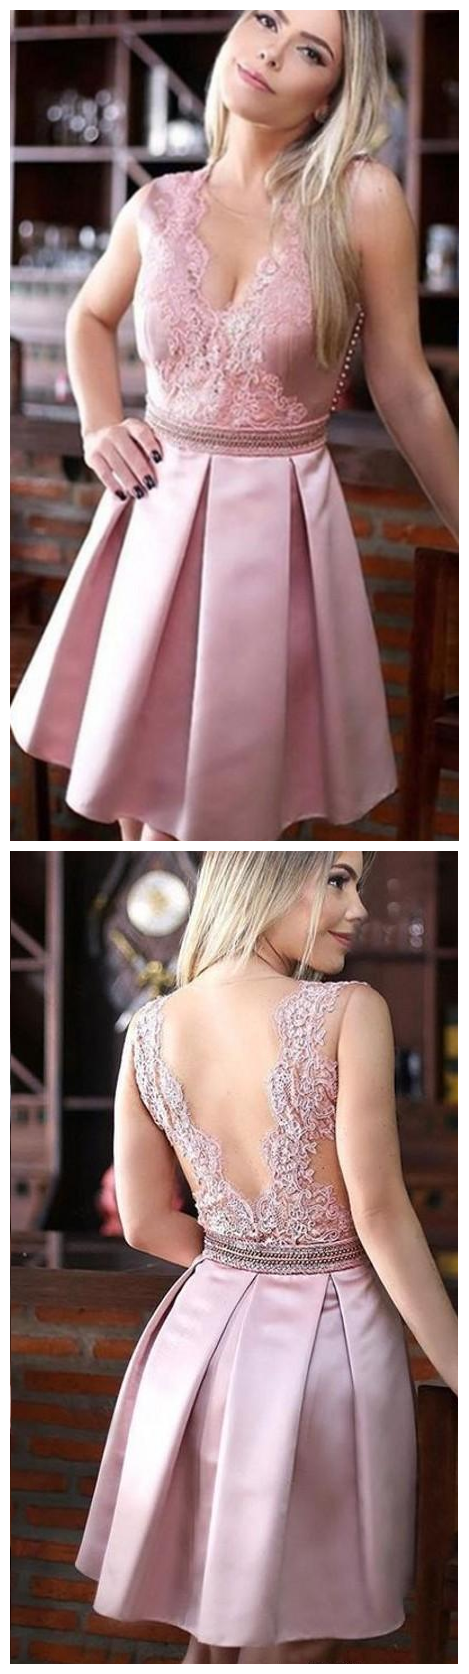 Pink V neck Cheap Homecoming Party dress Lace A line Satin Hollow Bling Crystal Ribbon Short Prom Graduation Club Dresses Gowns